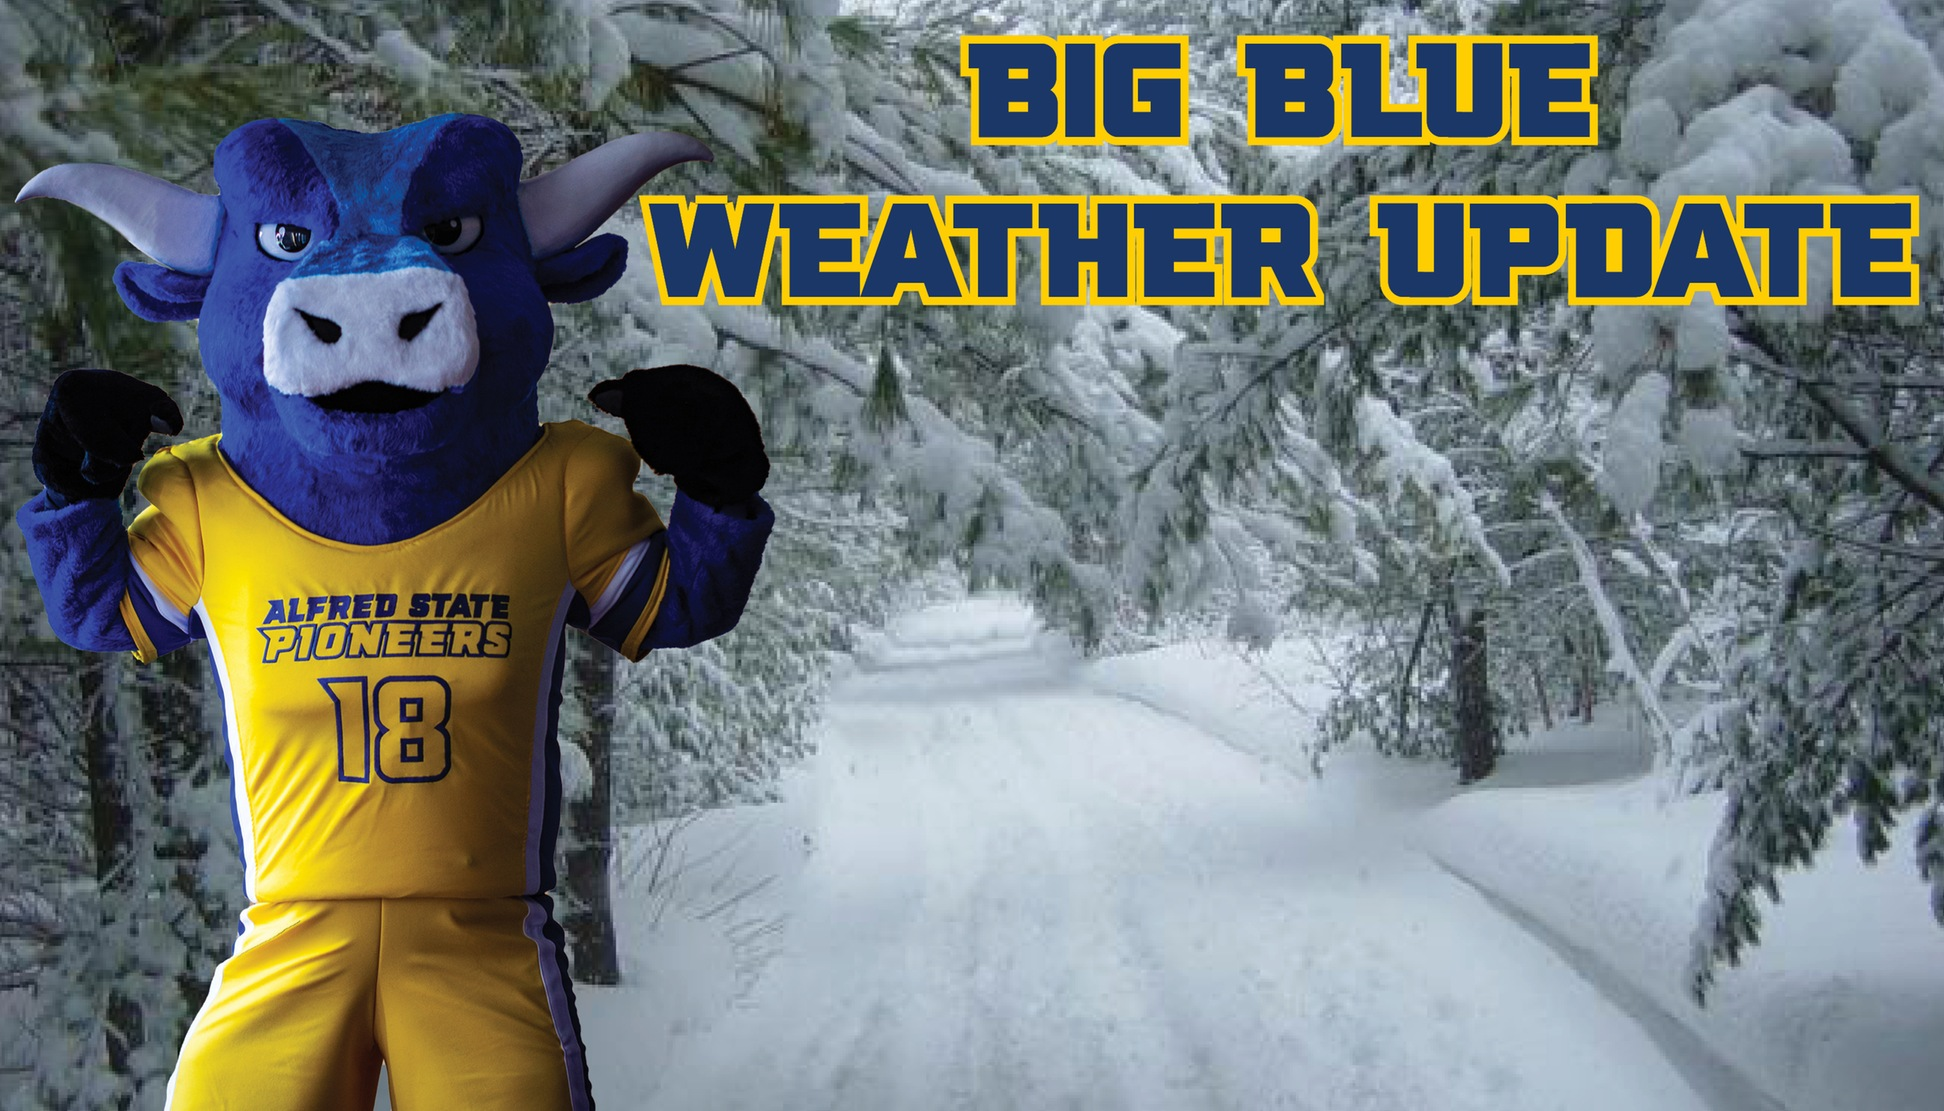 Big Blue Weather Update